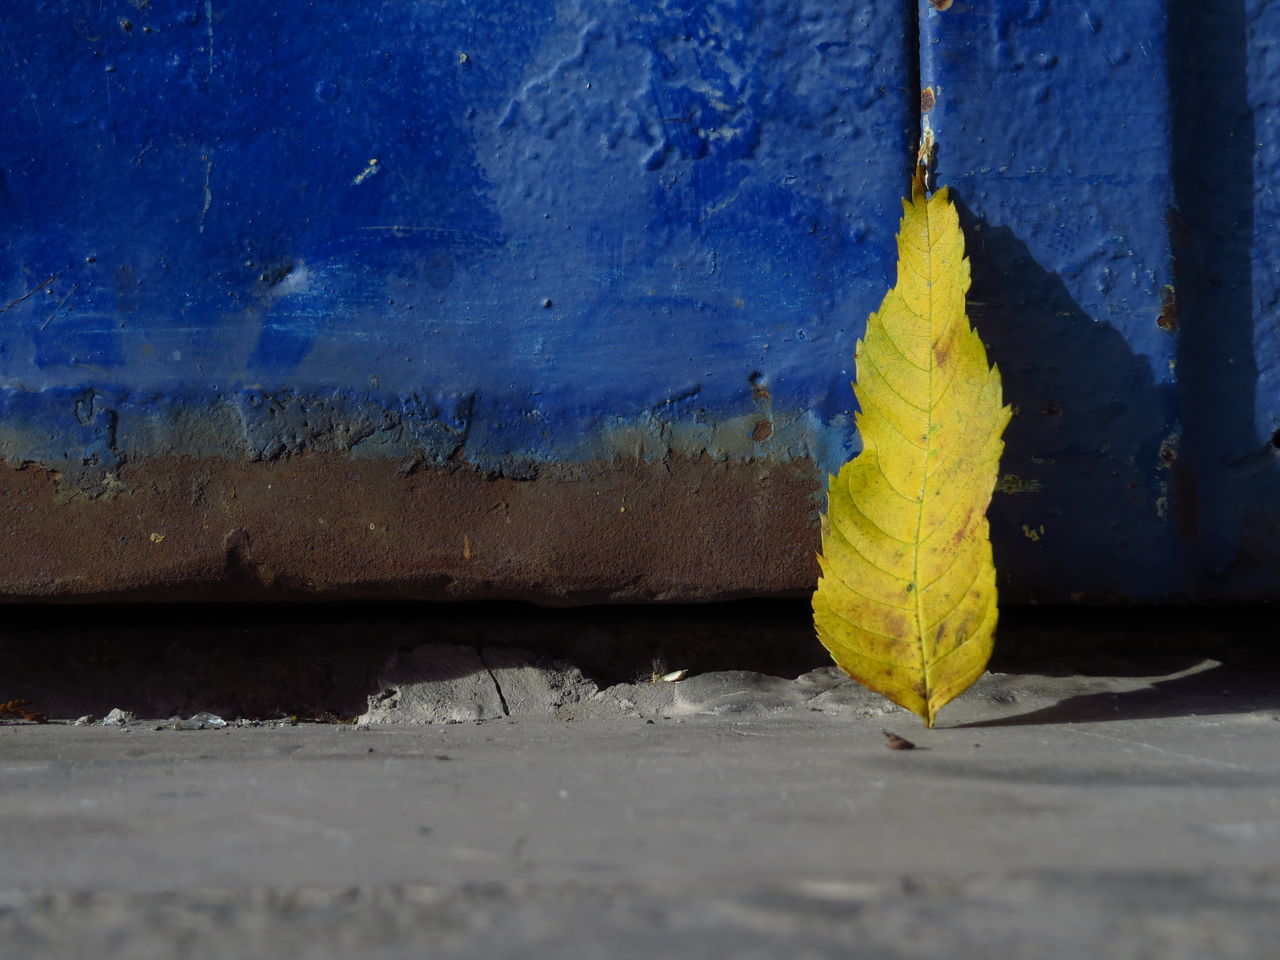 yellow, leaf, day, no people, blue, close-up, autumn, outdoors, textured, built structure, architecture, nature